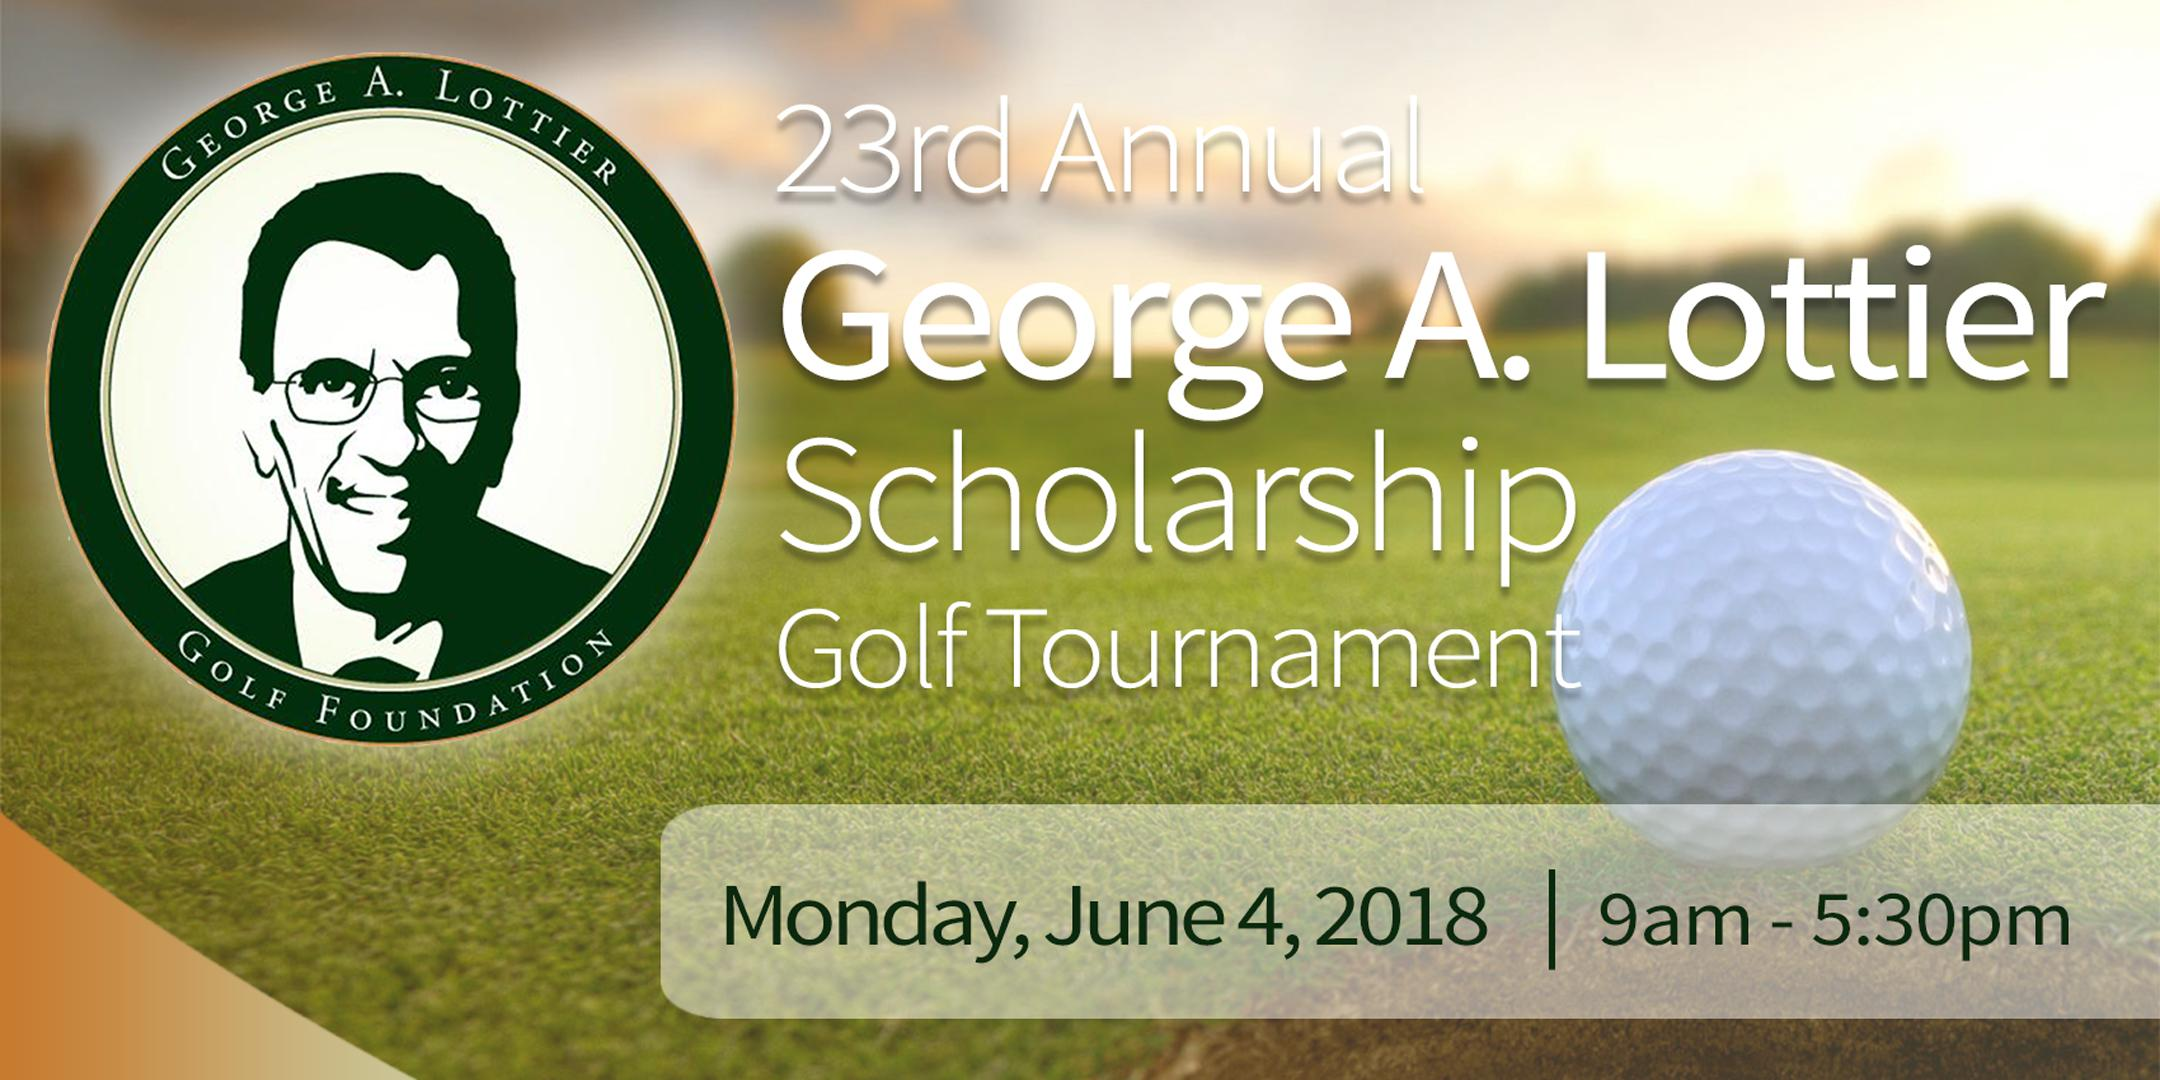 23rd Annual George A. Lottier Scholarship Golf Tournament